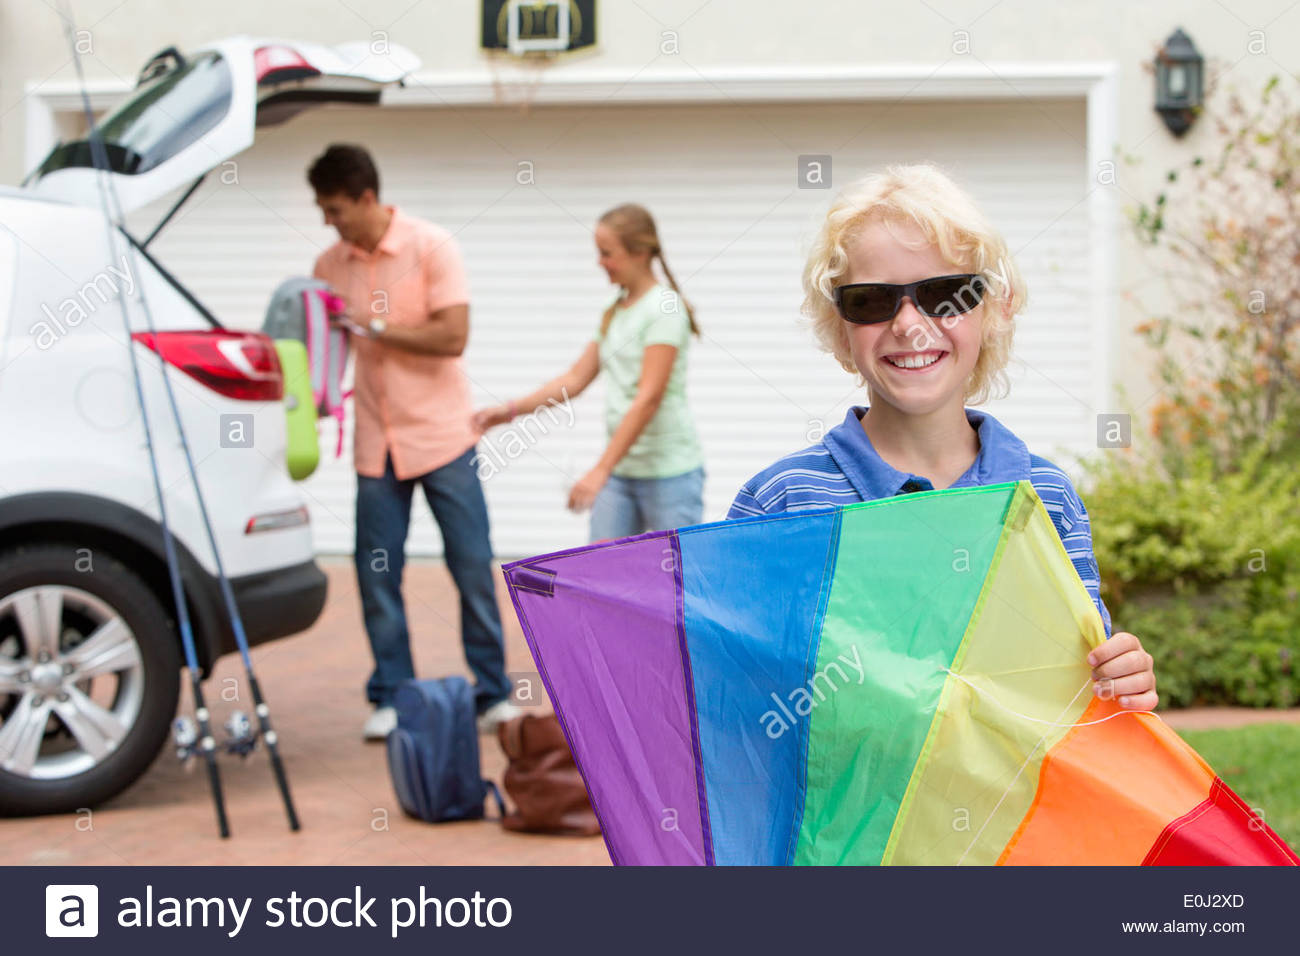 Portrait of smiling boy holding multicolor kite in driveway Stock Photo